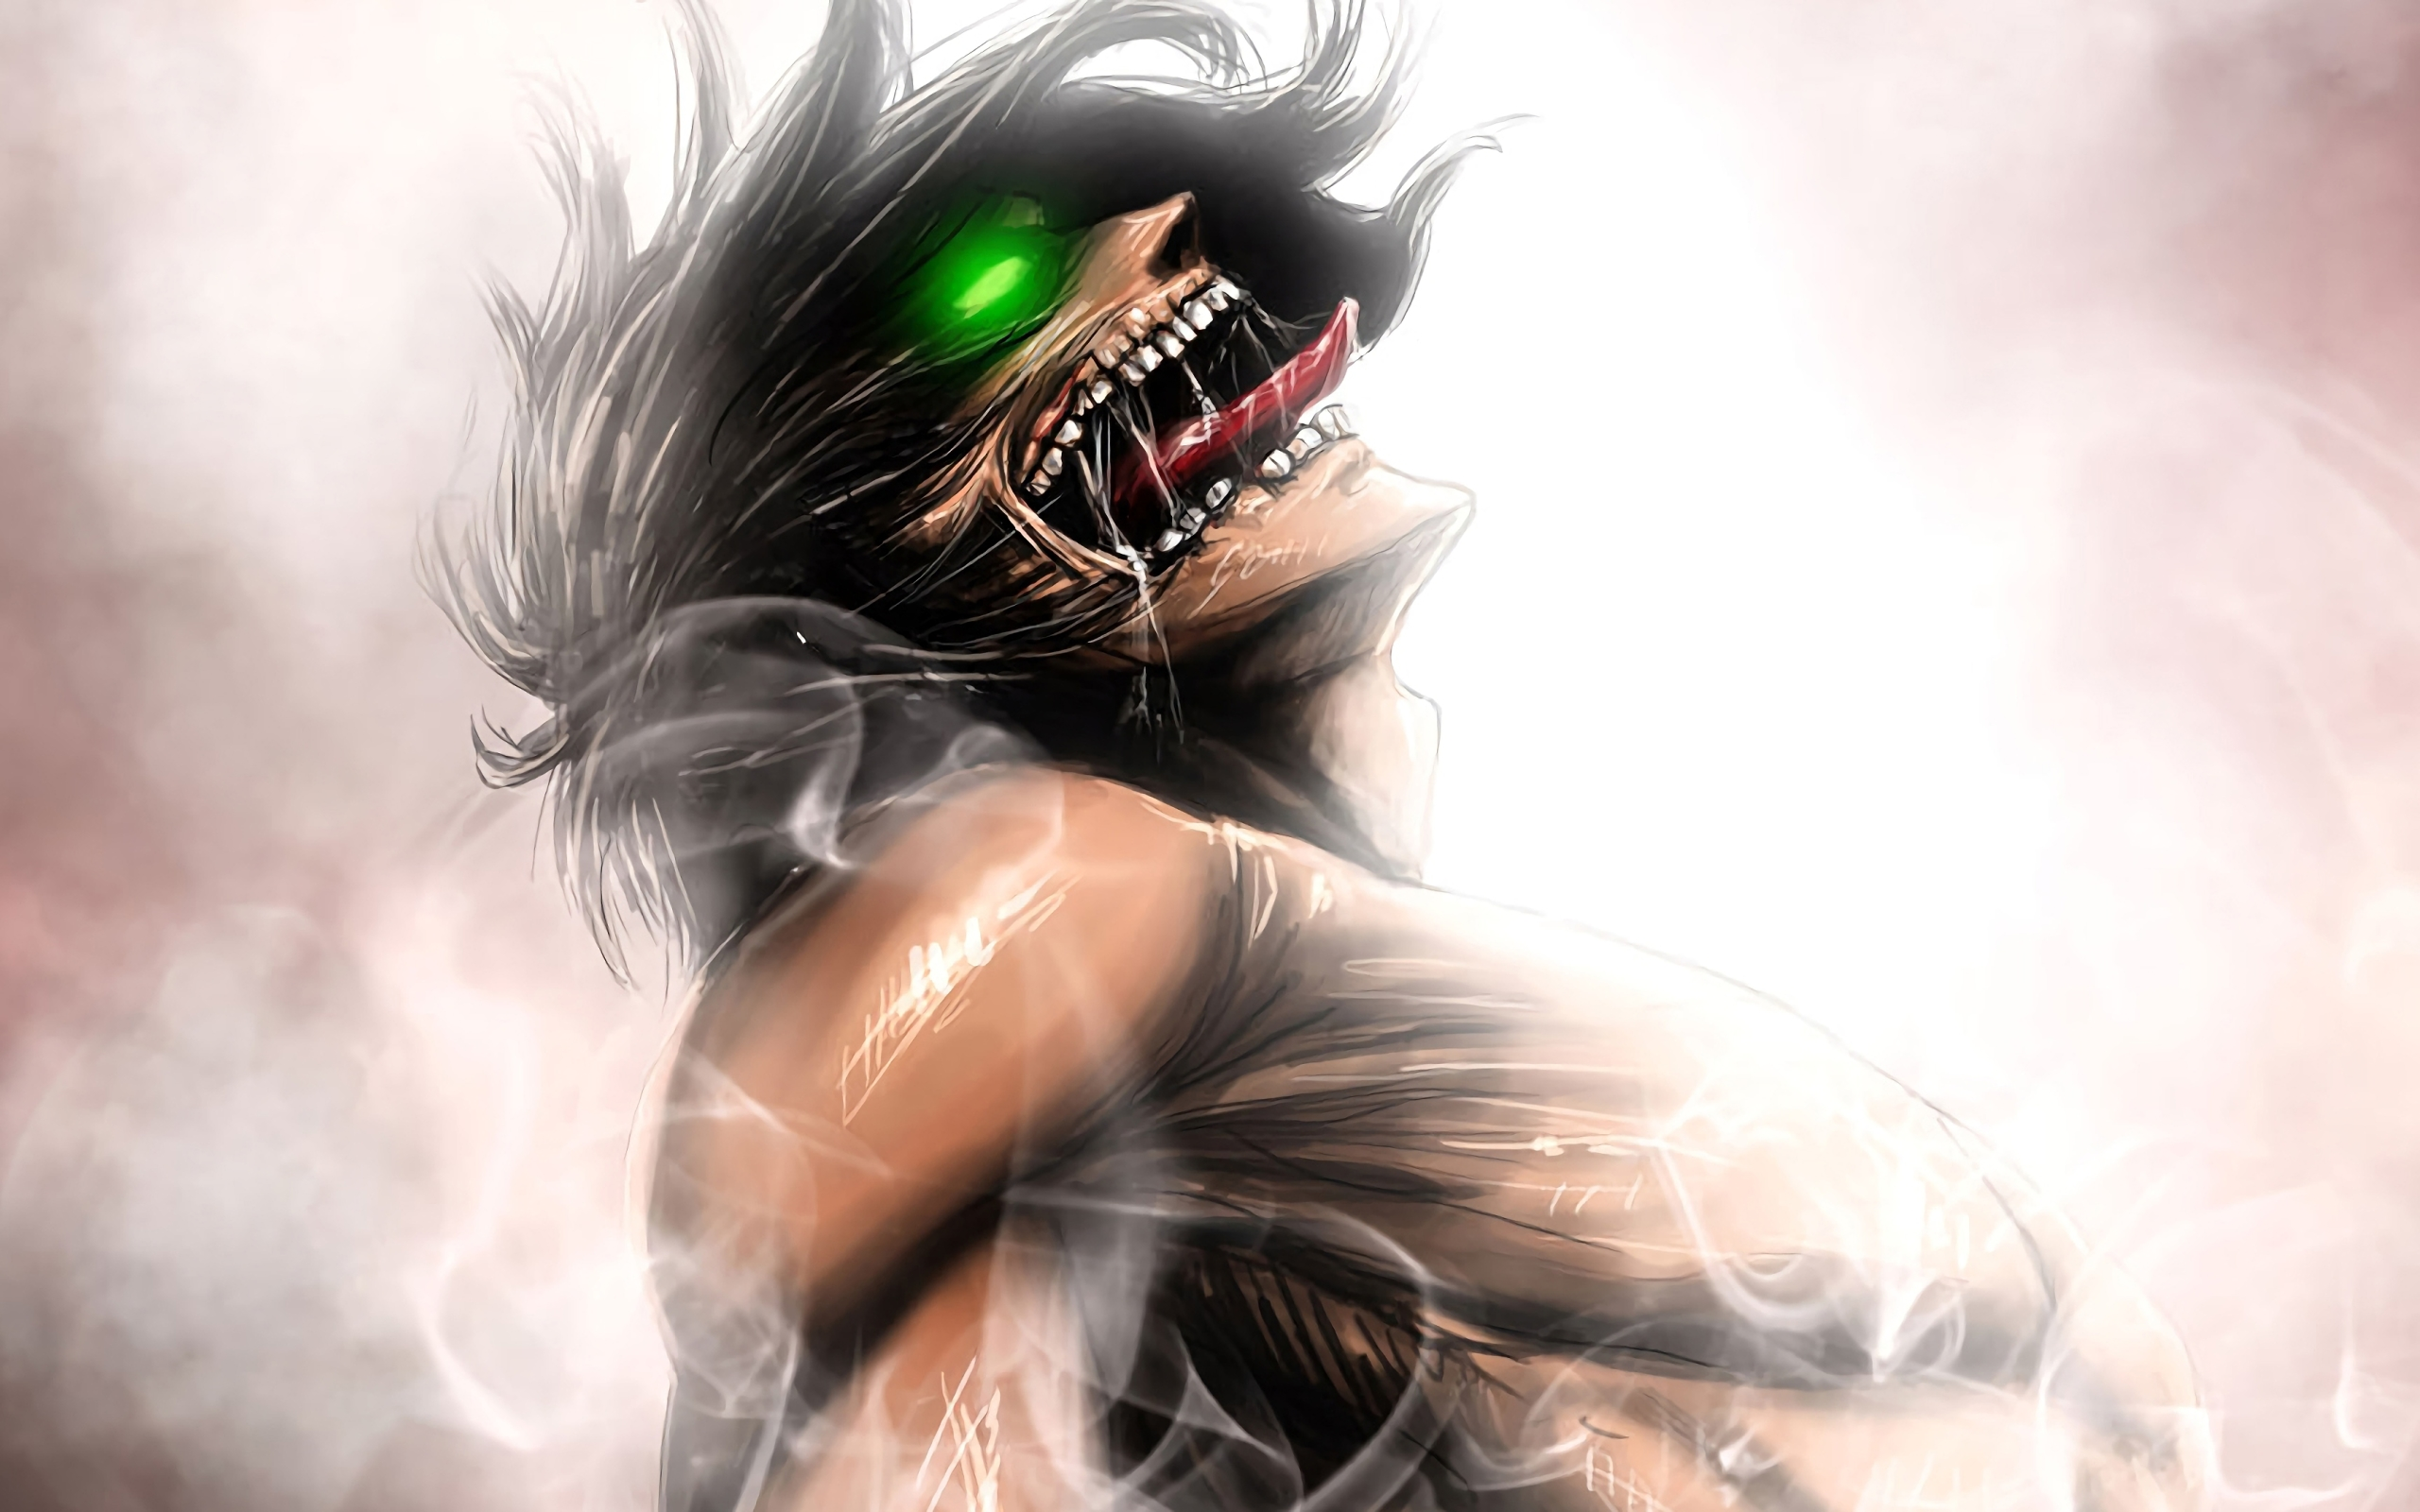 Wallpaper Of Eren Yeager Anime Attack Of Titan Background Attack On Titan Wallpaper Eren Titan 2560x1600 Wallpaper Teahub Io